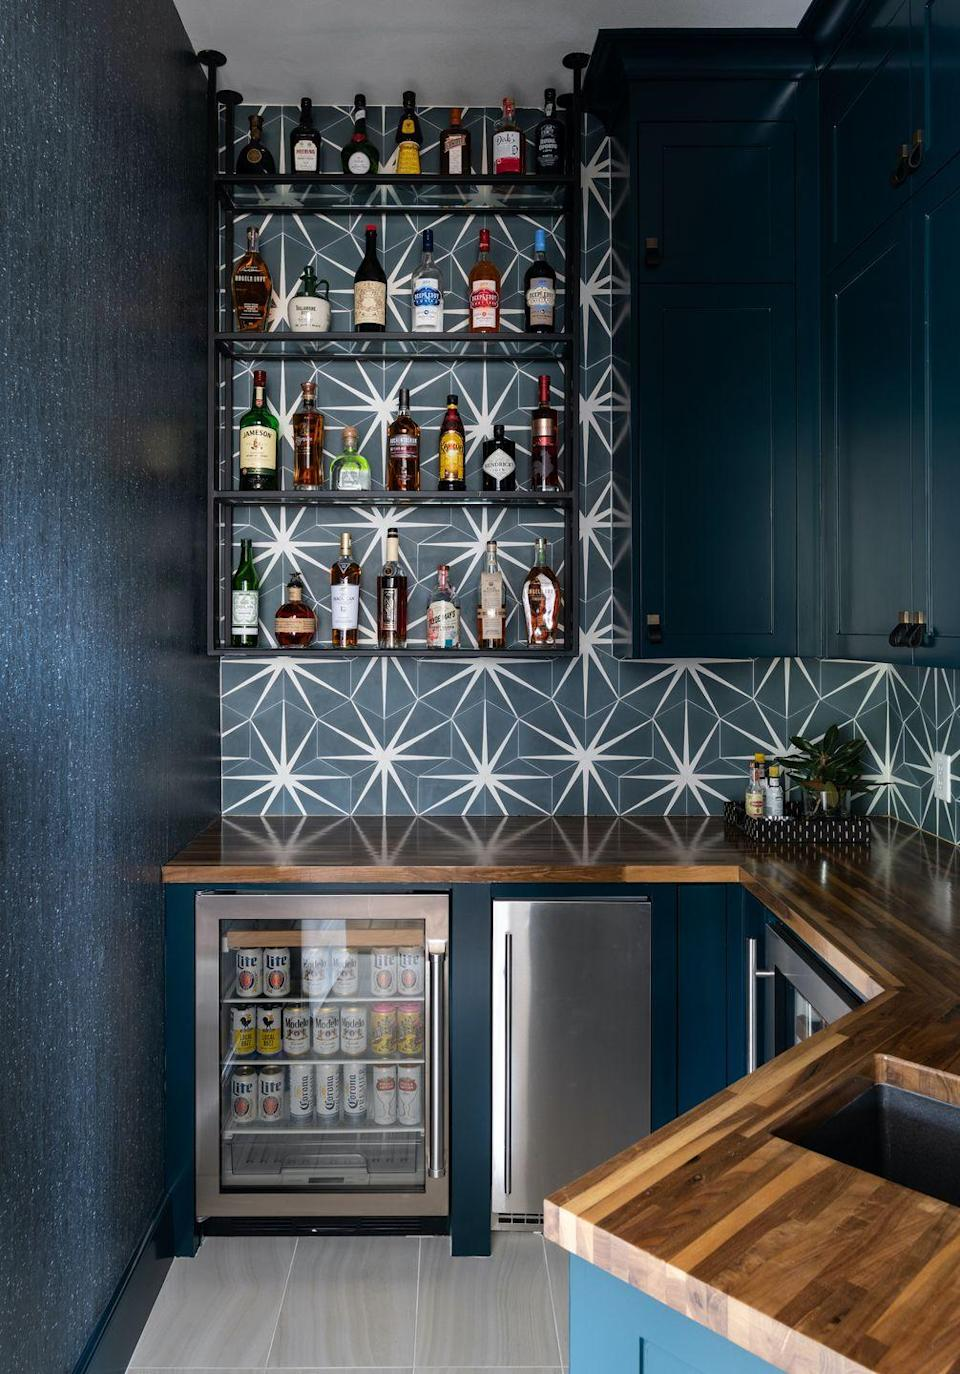 """<p>Instead of adding a backsplash to your <a href=""""https://www.elledecor.com/design-decorate/room-ideas/a34585665/home-bar-design-2020/"""" rel=""""nofollow noopener"""" target=""""_blank"""" data-ylk=""""slk:home bar"""" class=""""link rapid-noclick-resp"""">home bar</a>, take a cue from designer <a href=""""https://traciconnellinteriors.com/"""" rel=""""nofollow noopener"""" target=""""_blank"""" data-ylk=""""slk:Traci Connell"""" class=""""link rapid-noclick-resp"""">Traci Connell</a> and opt for a statement-making wallpaper.</p><p><em>Harmony Navy Wallpaper, $120<br></em><a class=""""link rapid-noclick-resp"""" href=""""https://www.grahambrown.com/us/harmony-navy-wallpaper/107587-master.html"""" rel=""""nofollow noopener"""" target=""""_blank"""" data-ylk=""""slk:Shop the Look"""">Shop the Look</a></p>"""